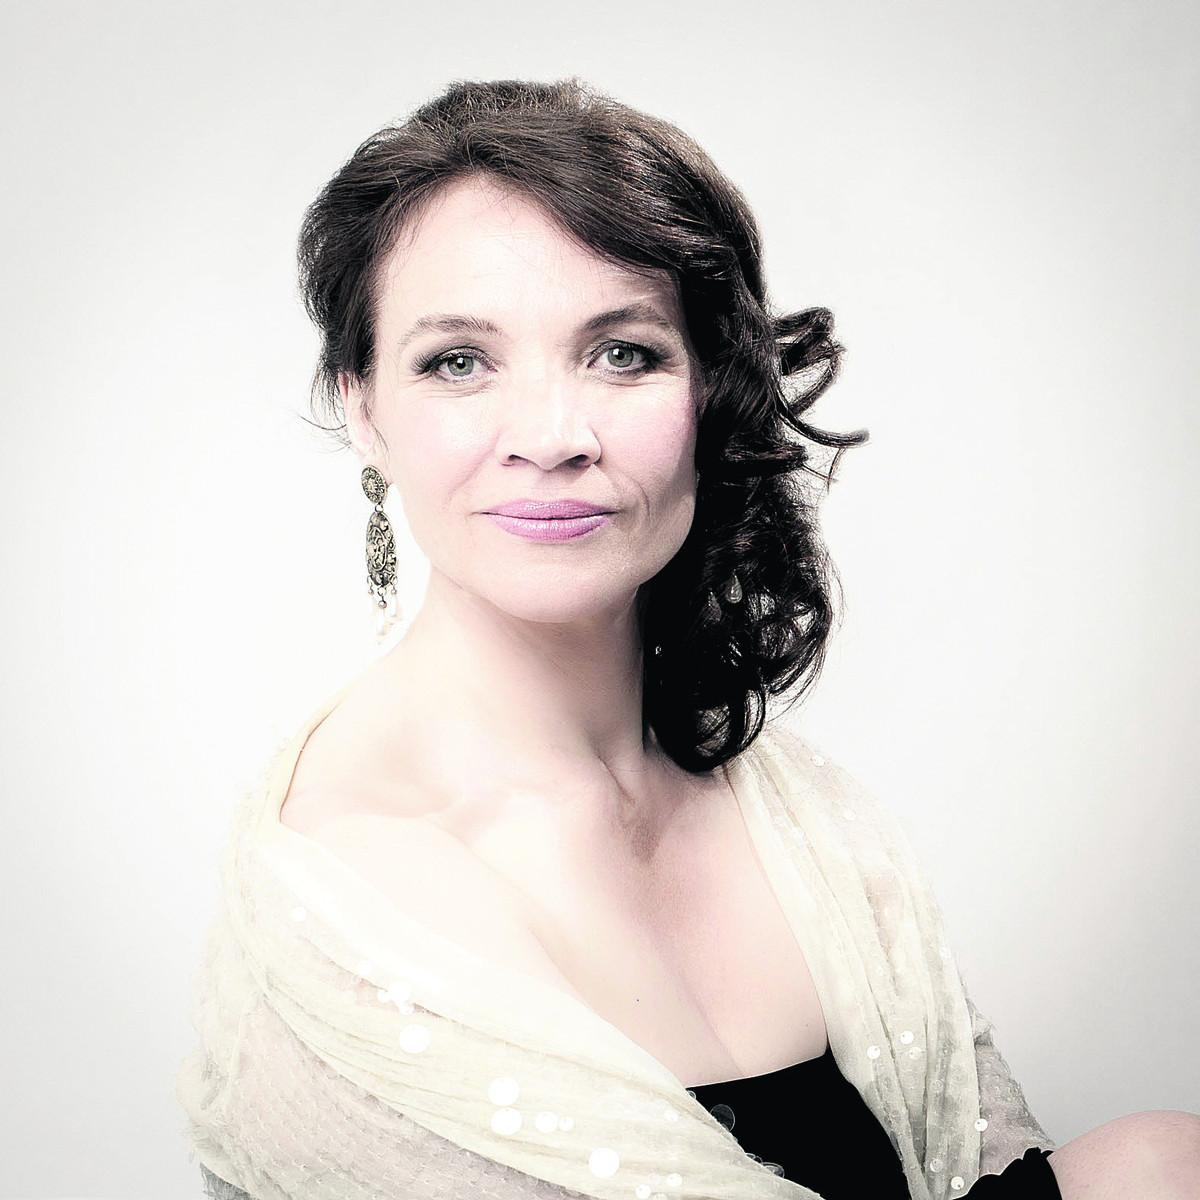 All that jazz makes Jacqui Dankworth a class act